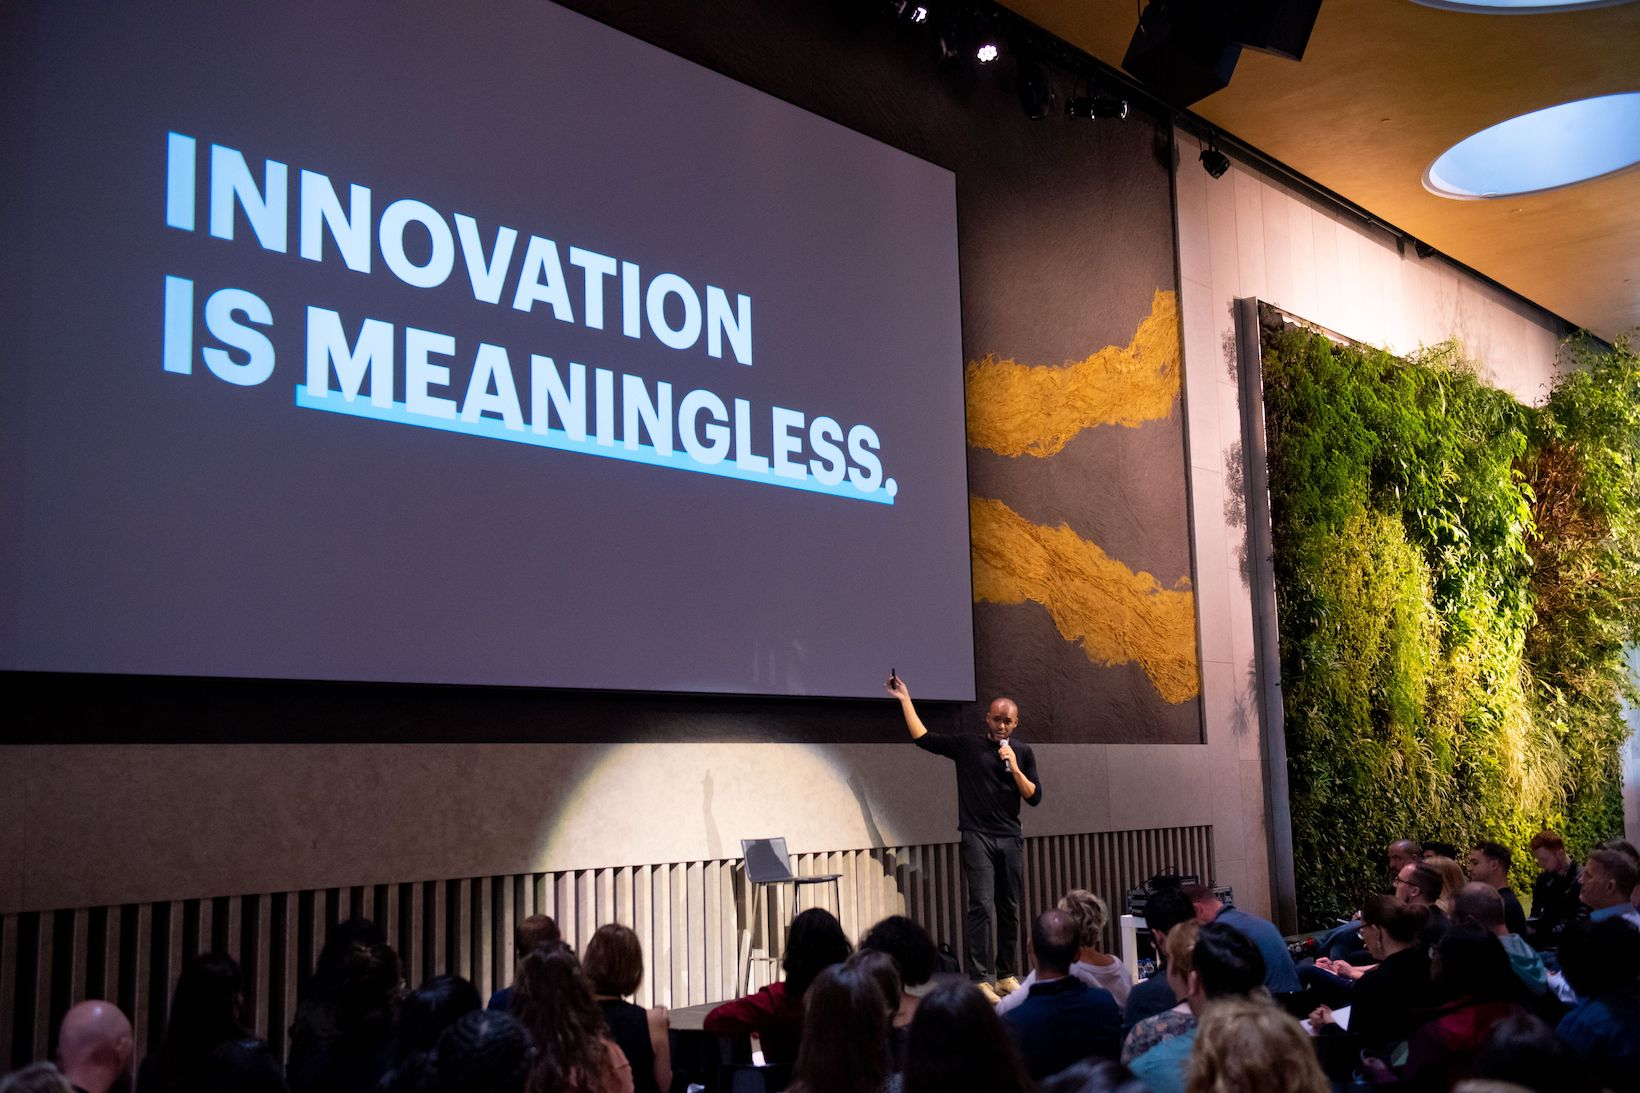 Alain Sylvain speaking at 99U Conference 2019 about innovation with slide stating that innovation is meaningless